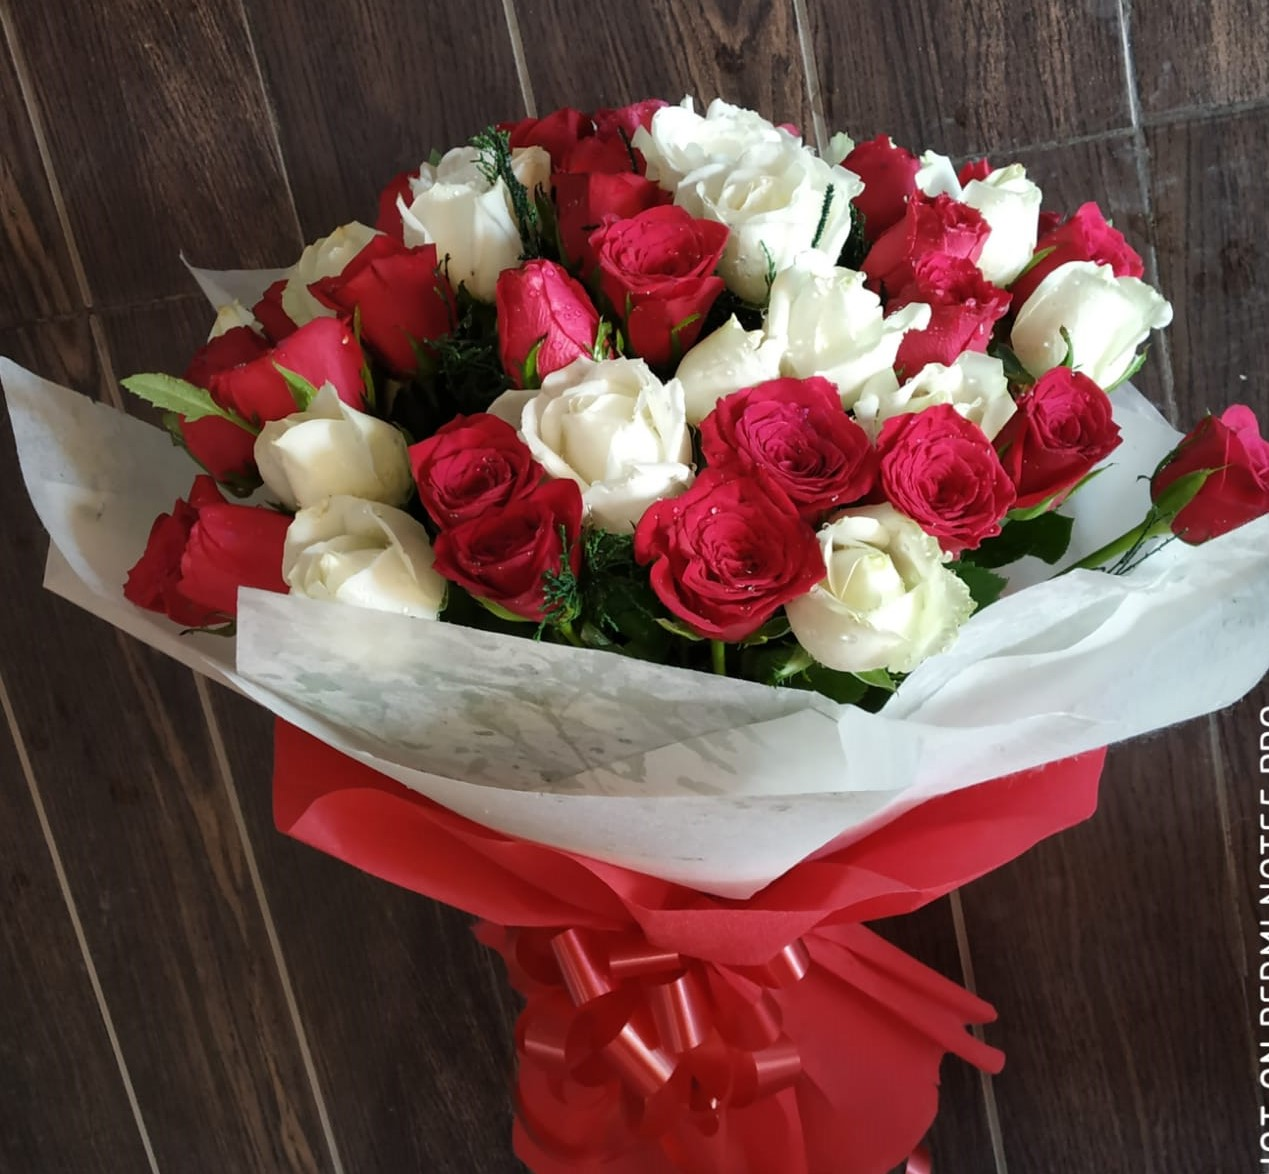 Flowers Delivery in Sector 38 GurgaonRed & White Roses in Duble Layer Packing